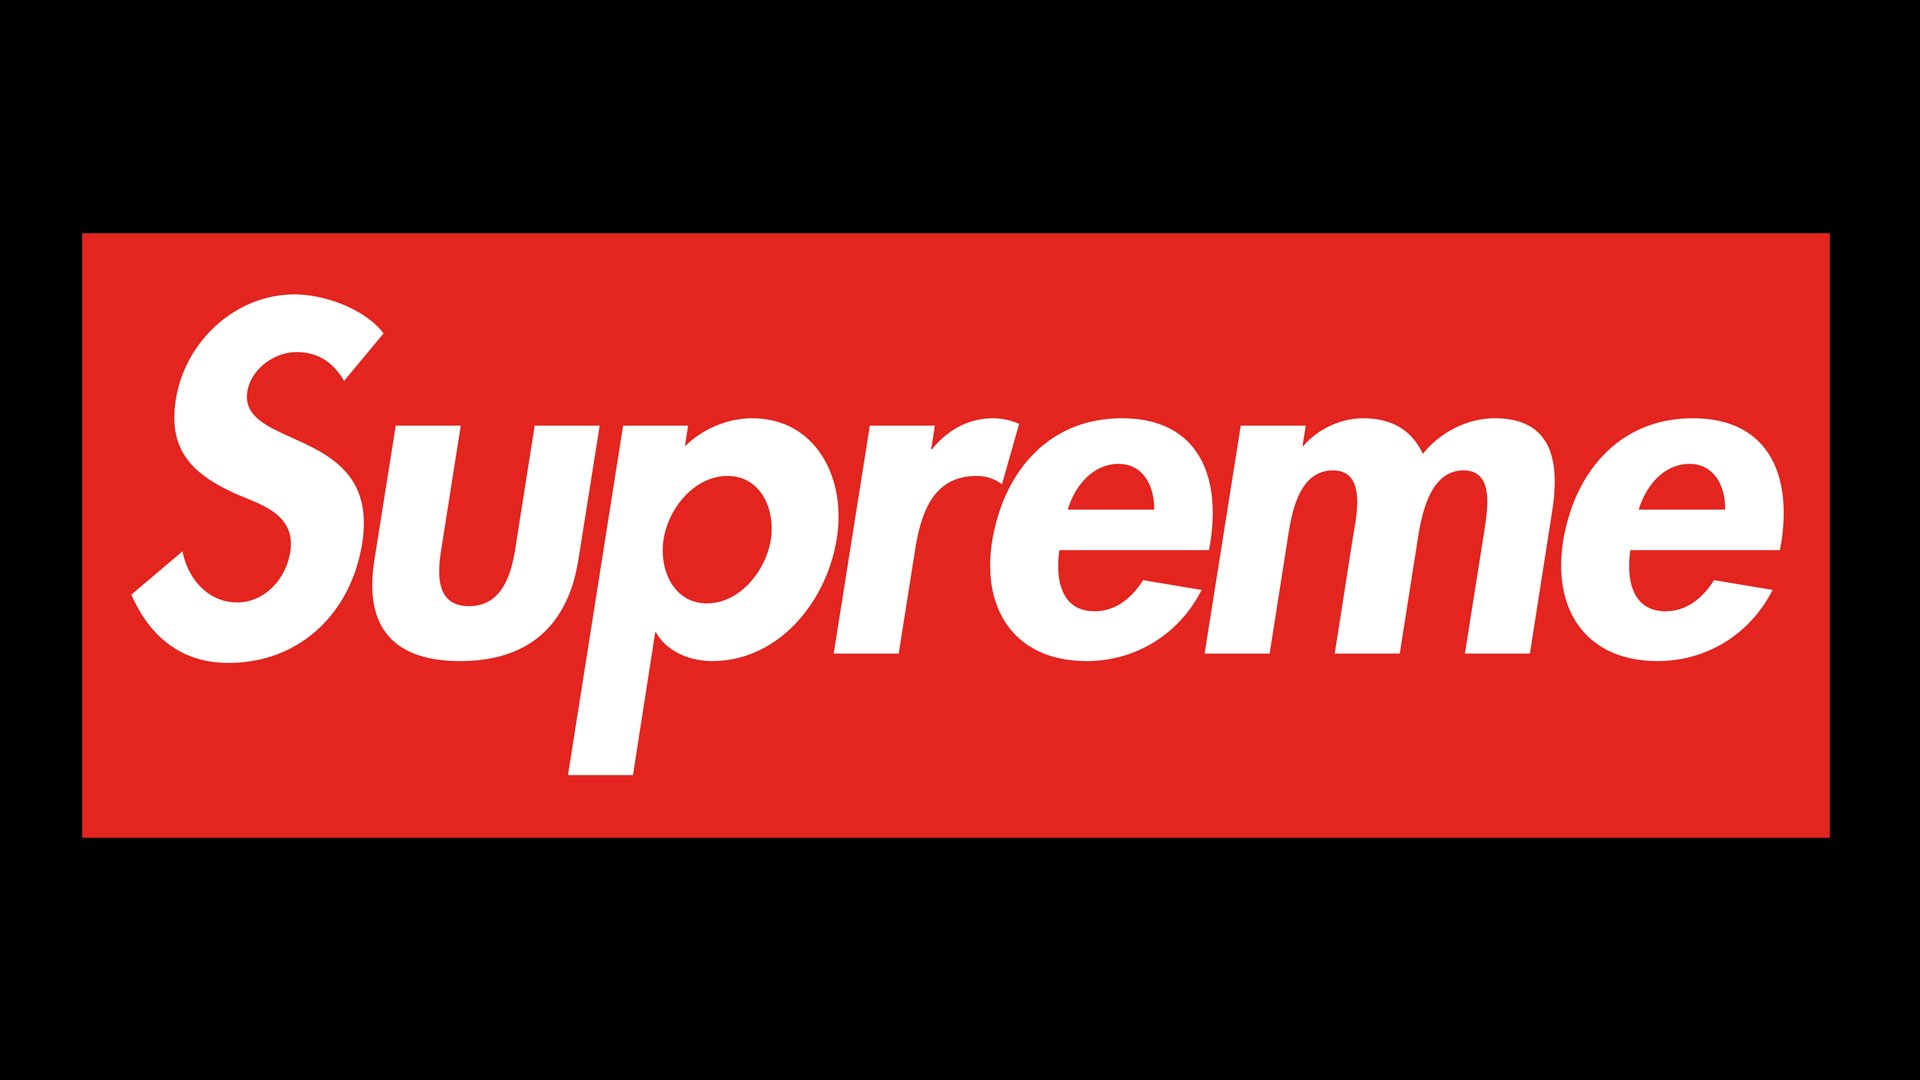 Lifted >> Supreme Logo, Supreme Symbol, Meaning, History and Evolution